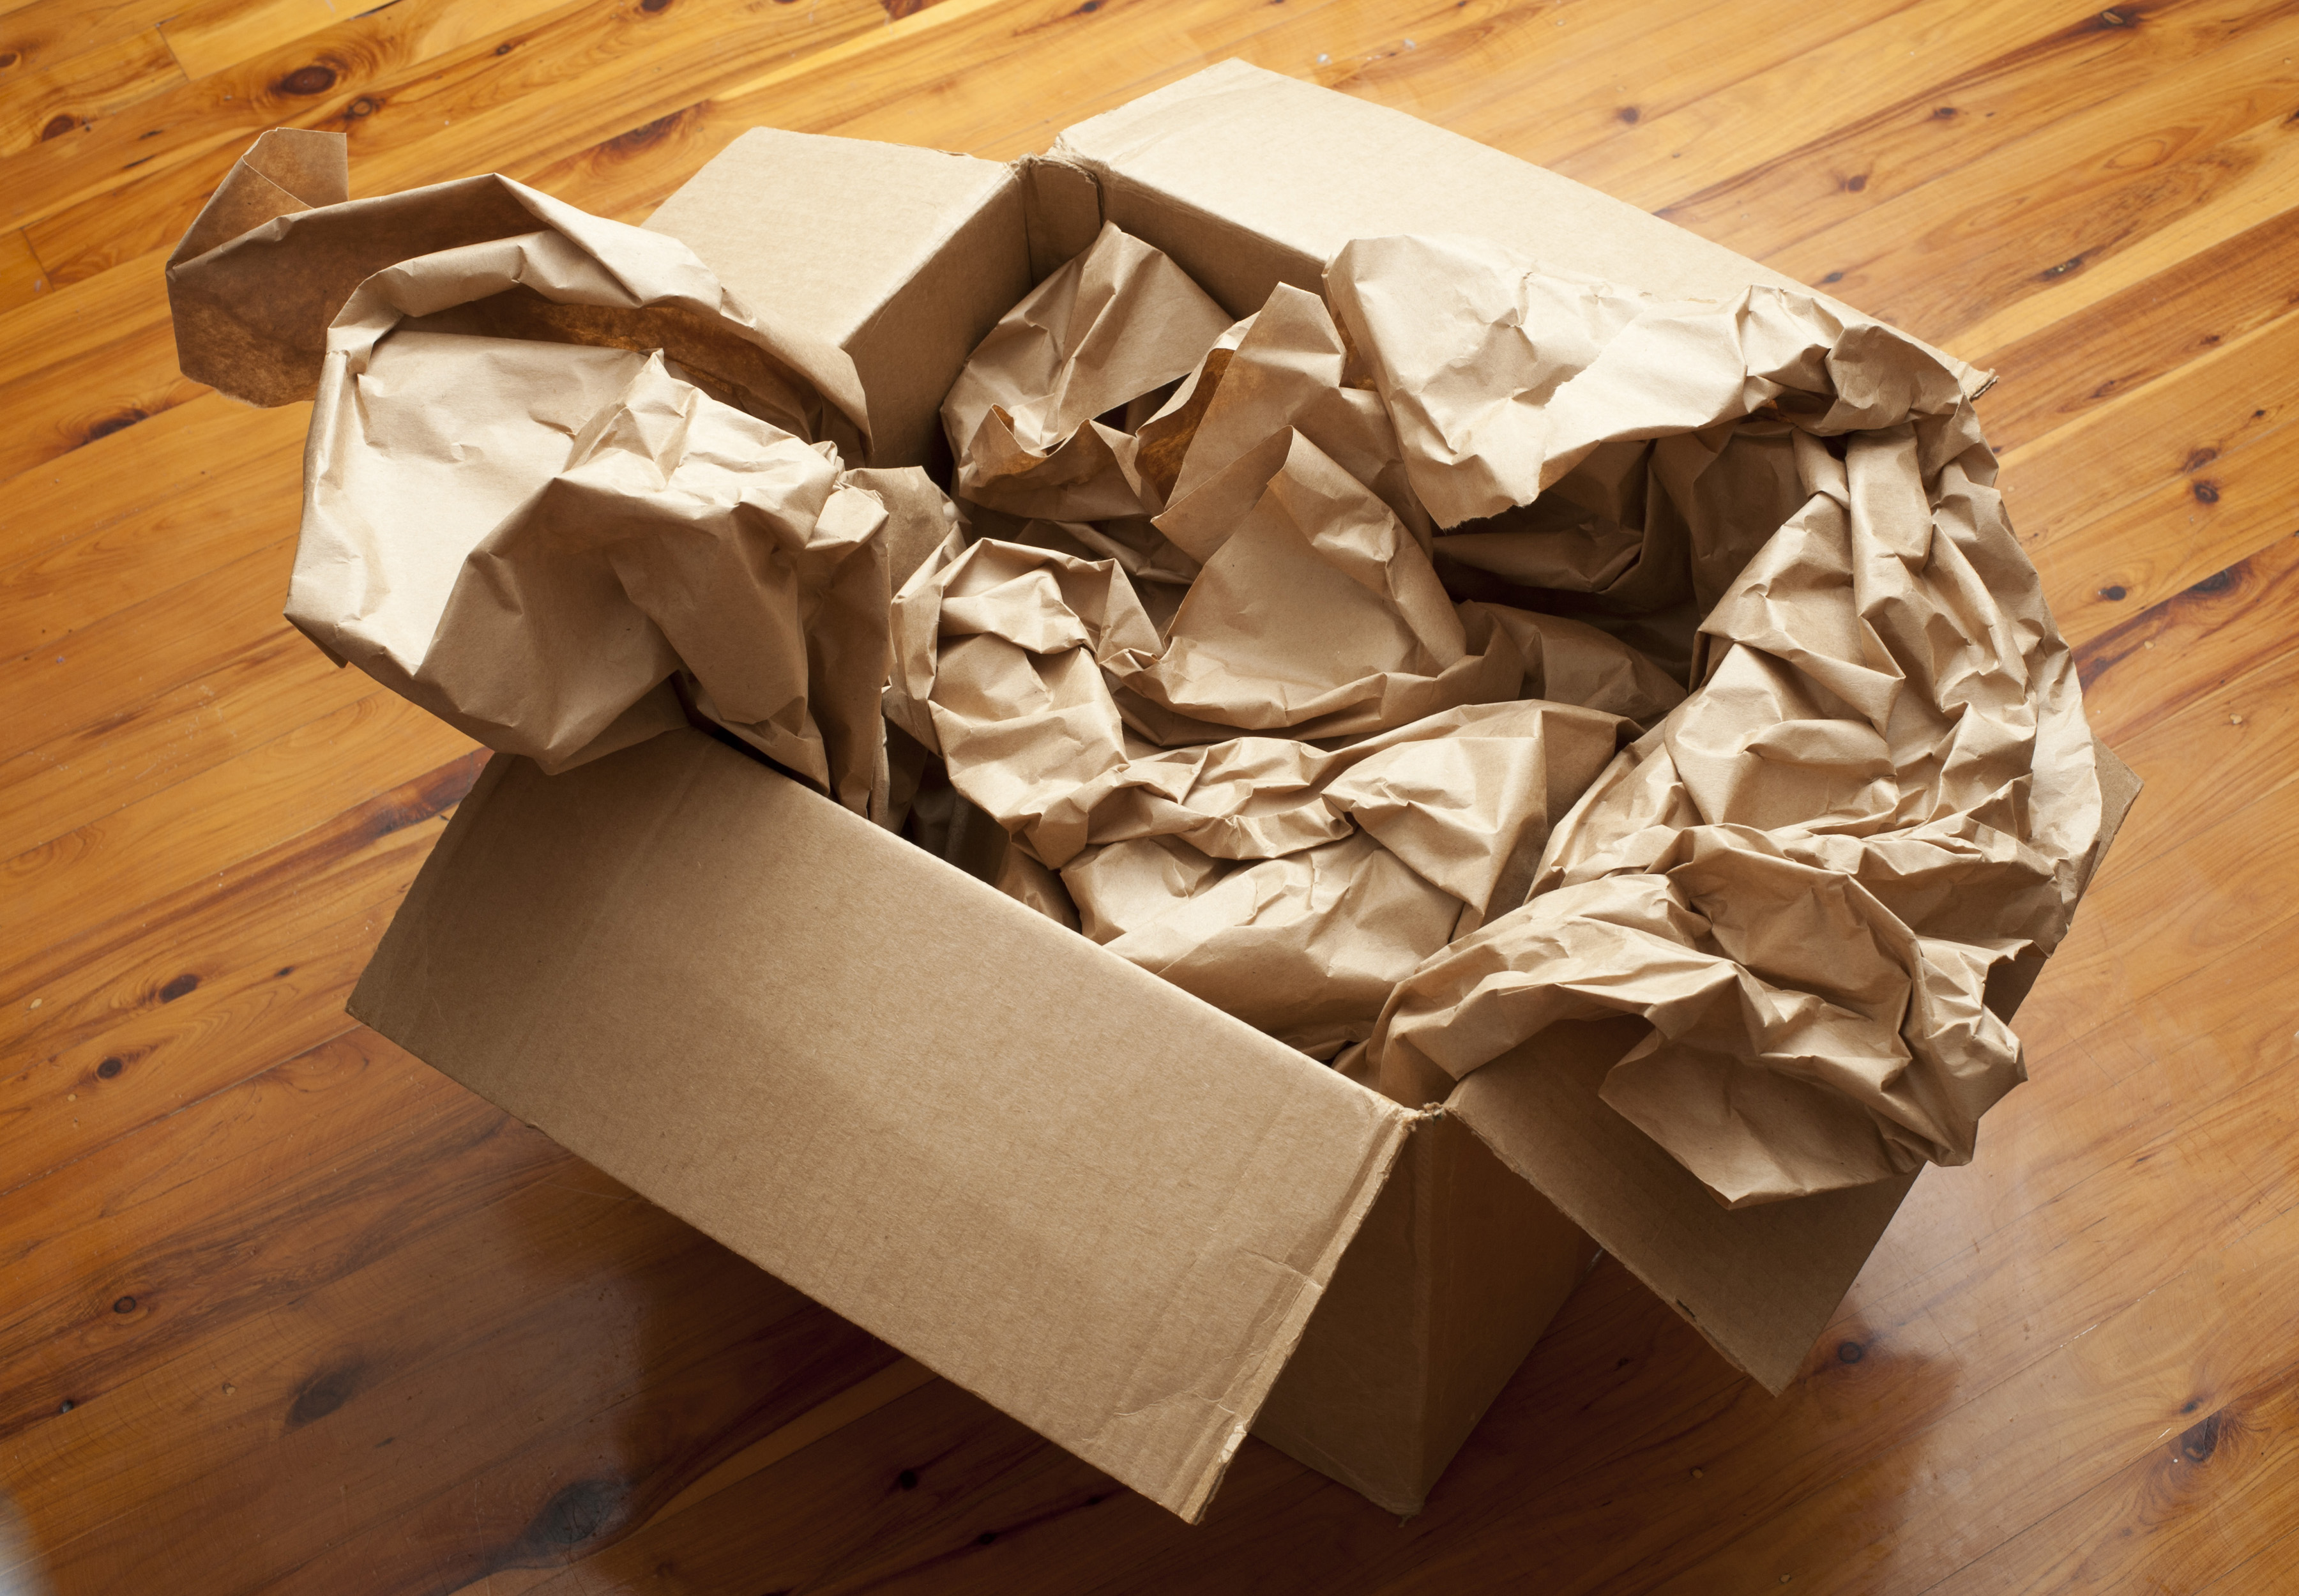 Open brown cardboard box with crumpled brown paper inside for packaging and storage viewed high angle on a wooden floor